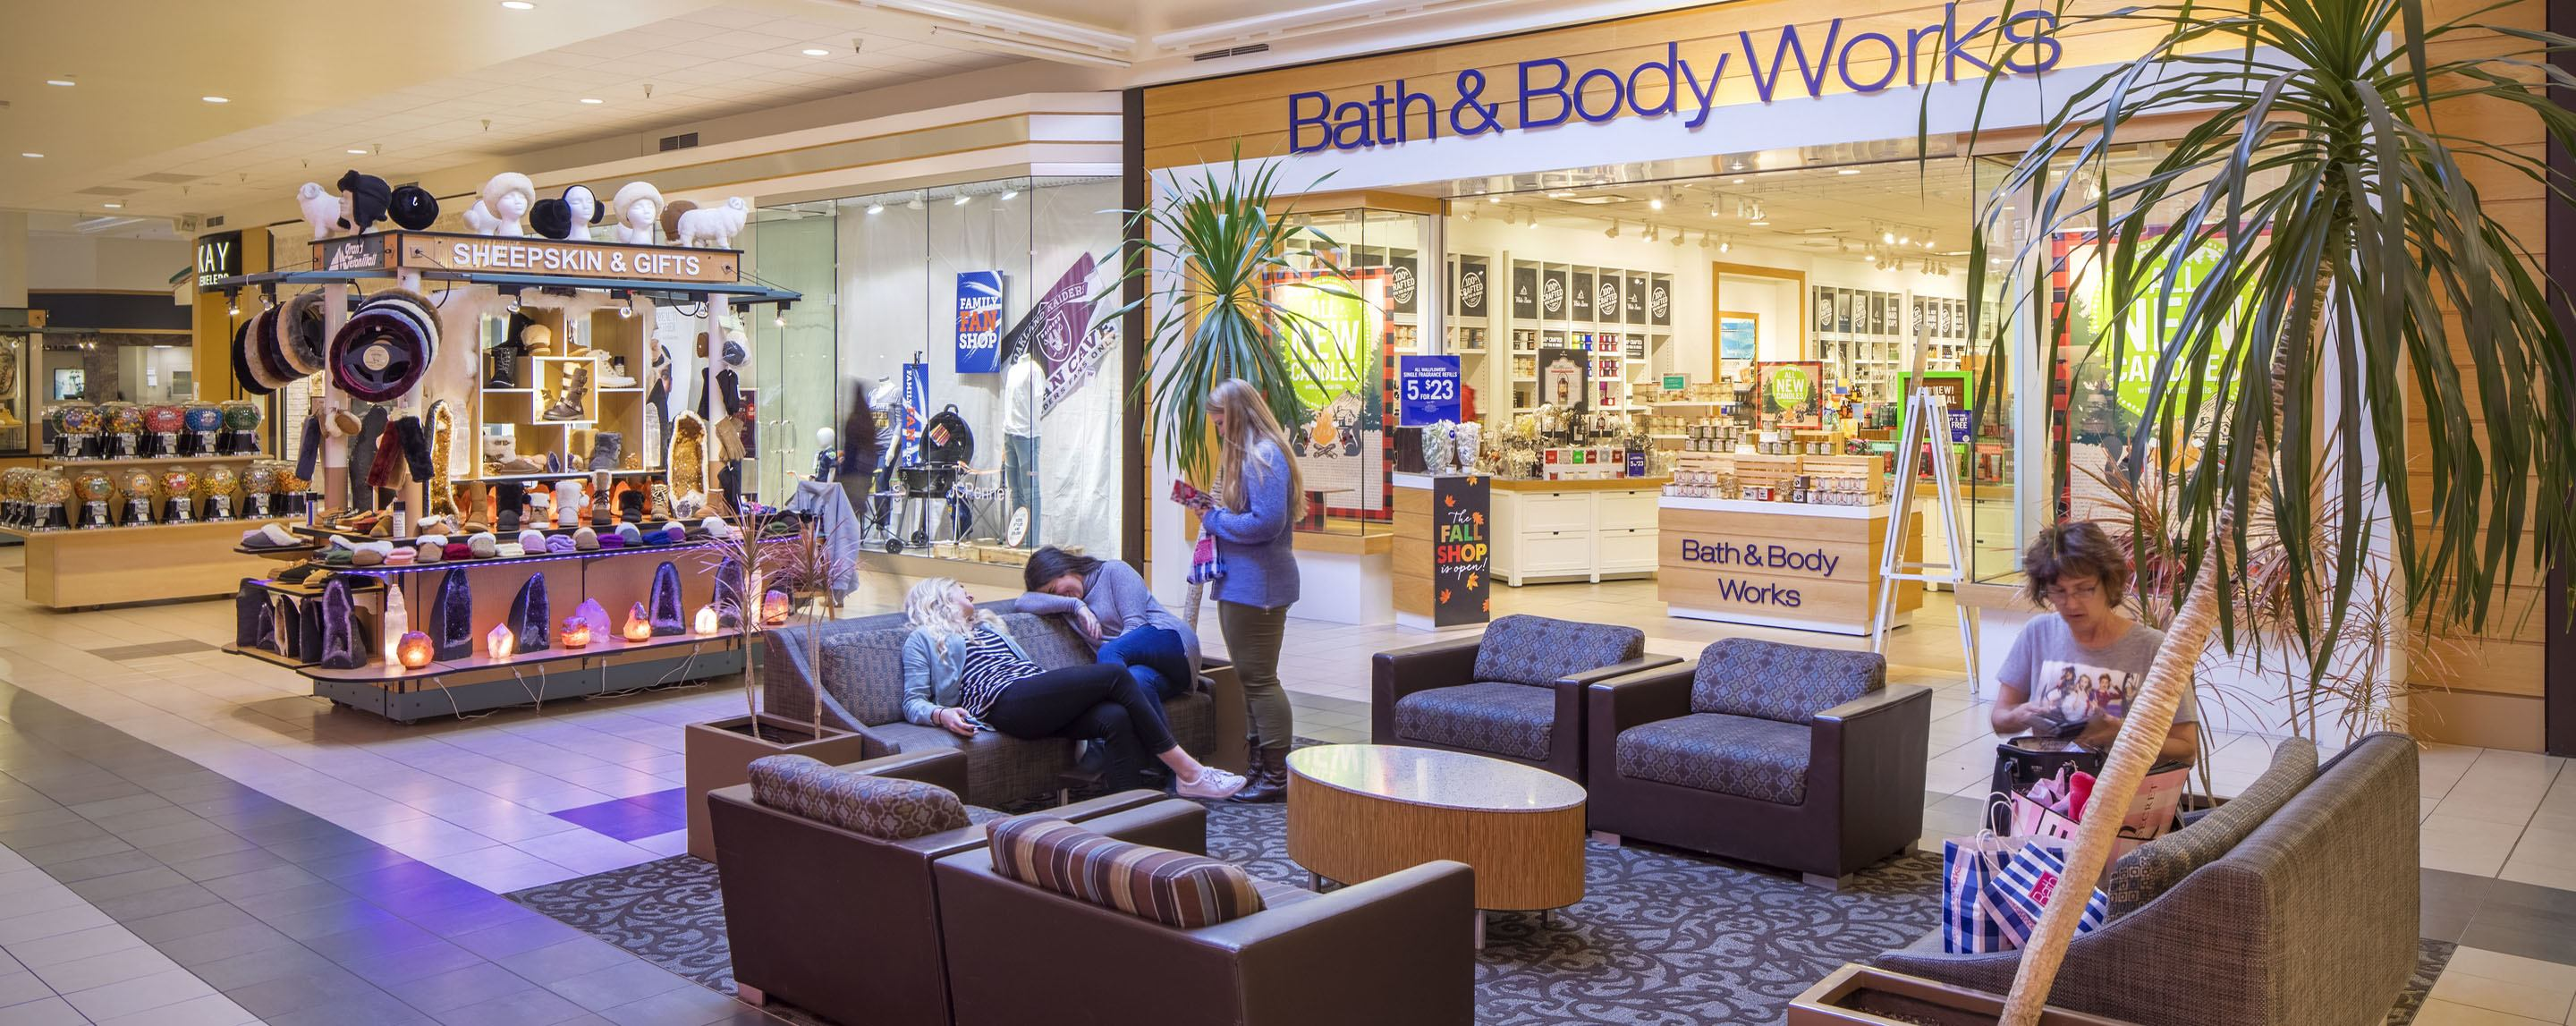 Next to a kiosk, people sit on couches outside of a Bath and Body Works in an indoor mall.